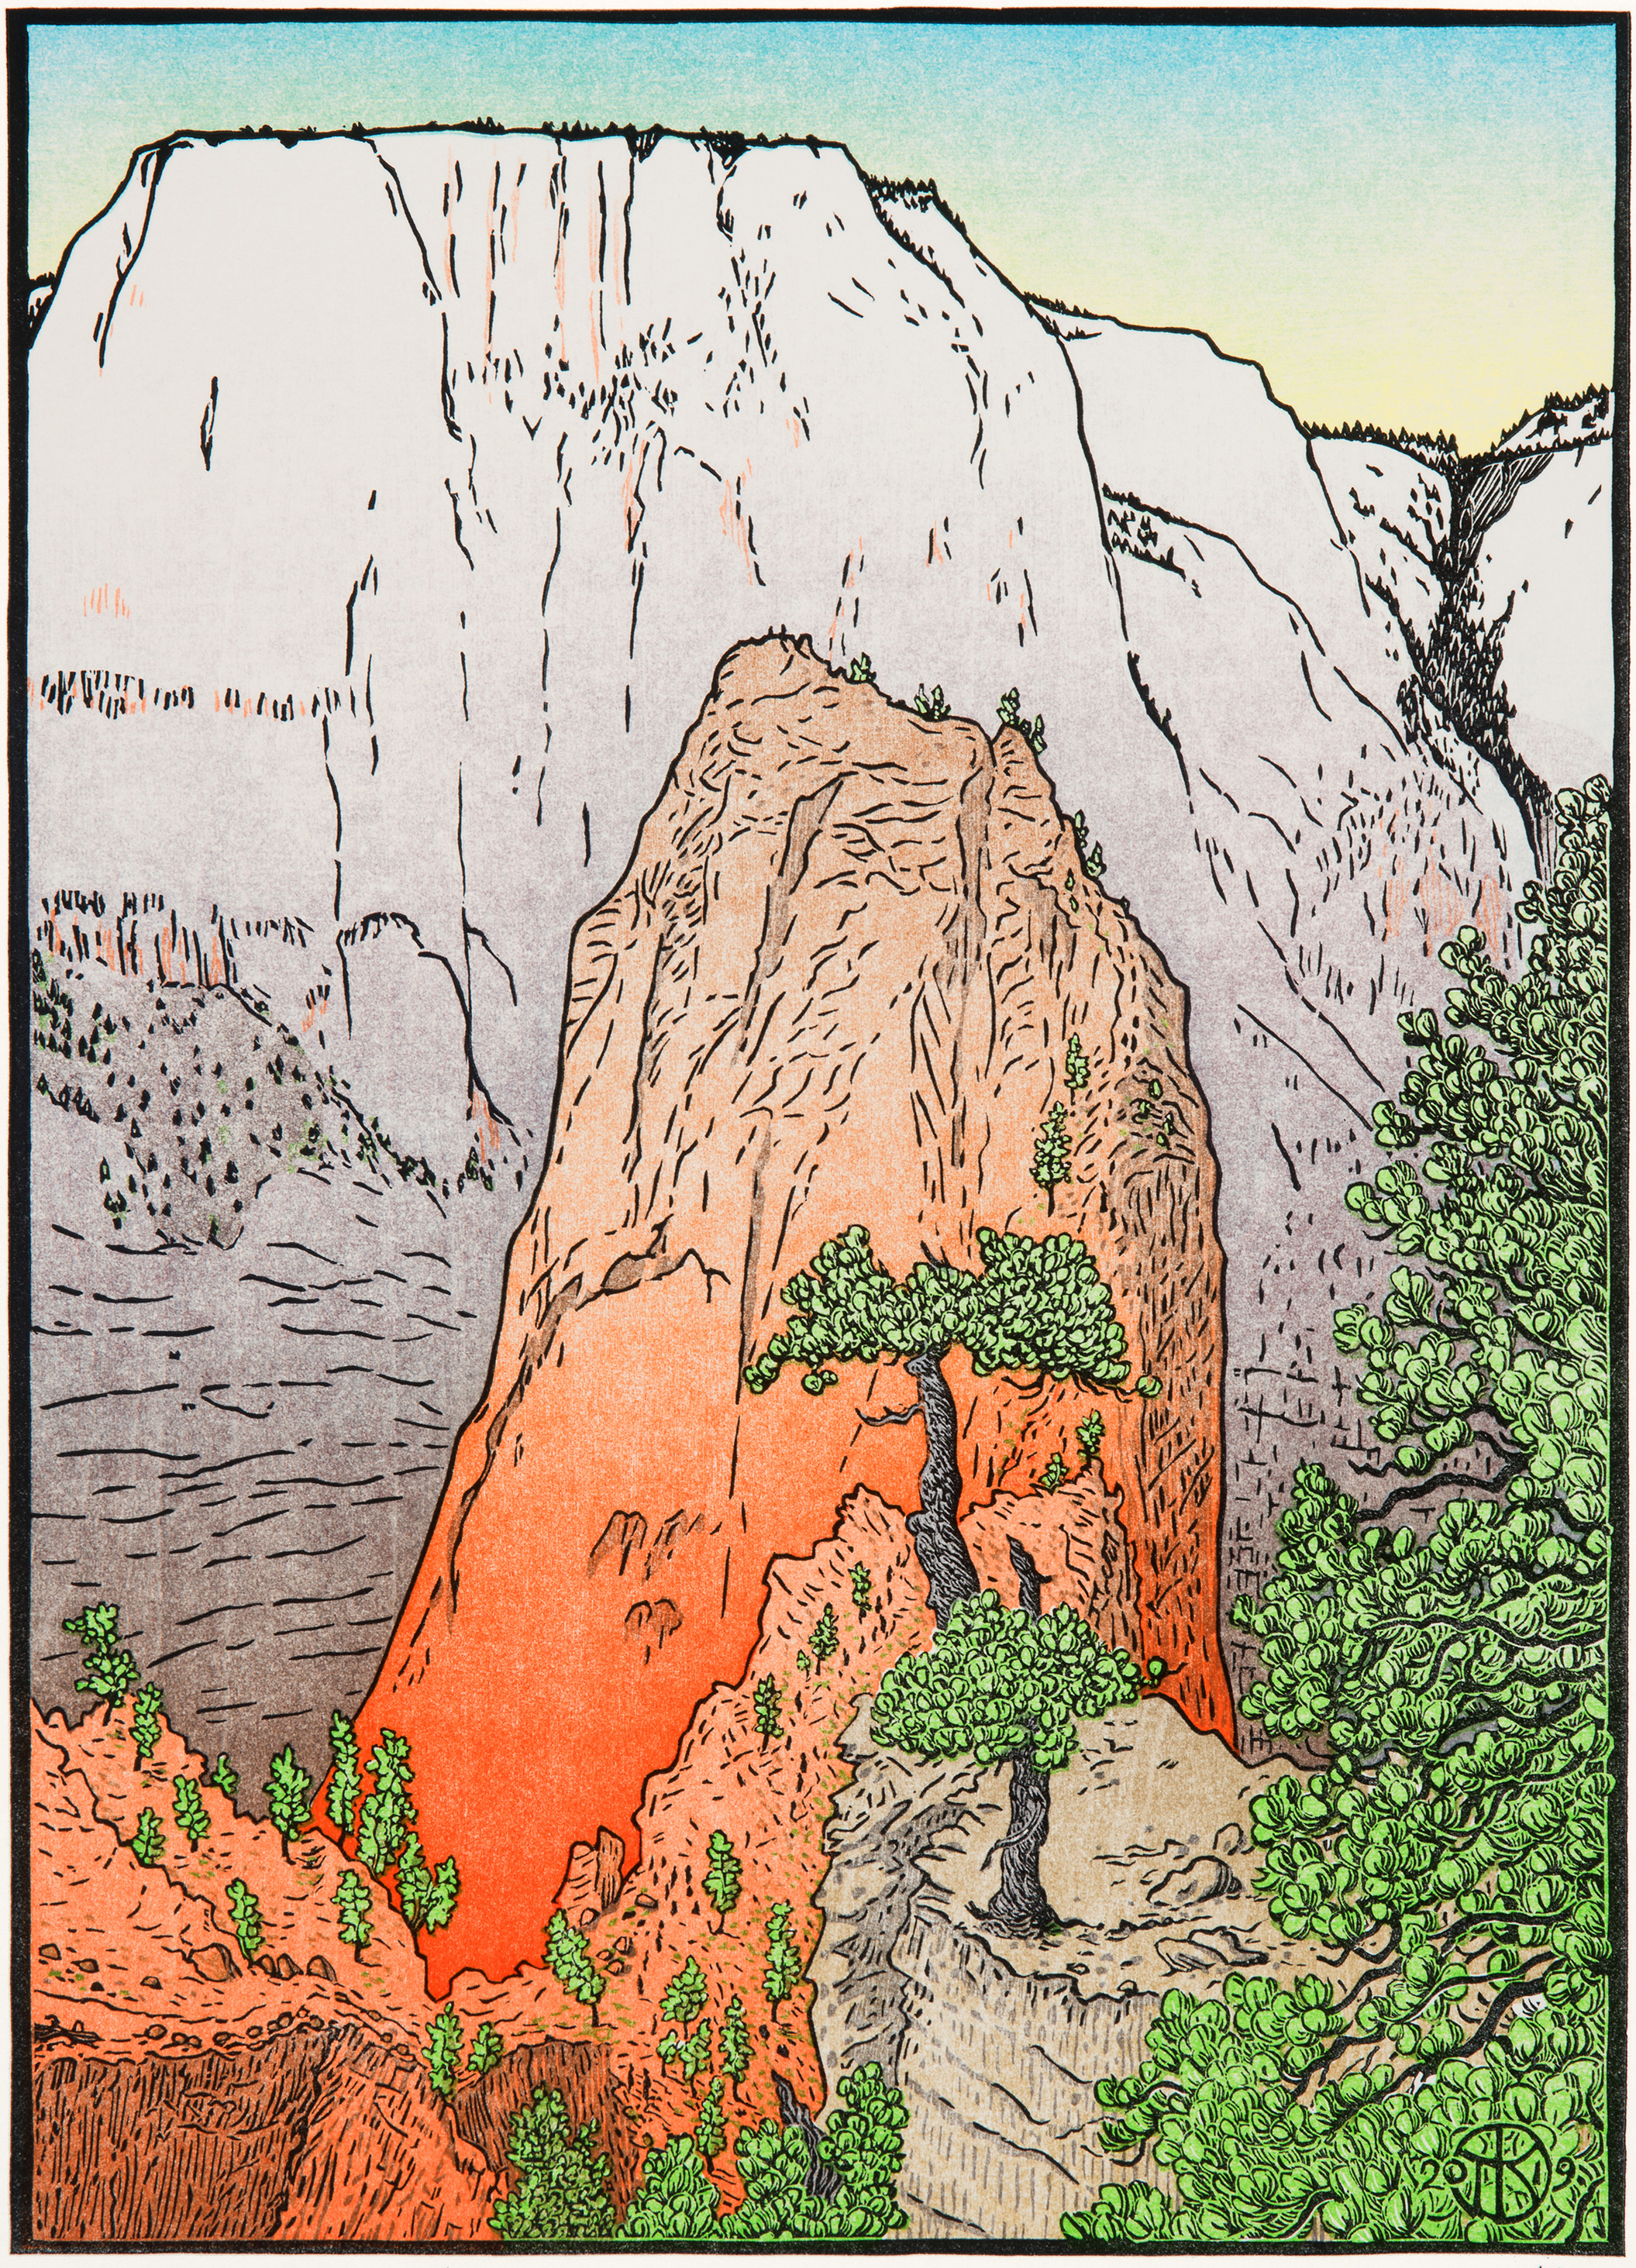 """""""Angels Landing, Zion National Park"""": 10 color-layer multi-block reduction cut print completed Feb. 2019. The scene is from above Angels Landing rock, with the White Throne cliffs behind. Sketched in March 2018 while Killion was 'Artist in Residence' at Zion, where he stayed in the stone house at the Angels Landing trailhead. He climbed the rock in the early morning before the crowds (which you can see as little dots snaking up the mid-ground rock in the print), then climbed much further up the mountain behind the rock for this view. Some of the blocks and color printing runs are shown at right to give you an idea of Killion's complex carving and printing process, beginning with key block being transferred to uncarved color blocks, then carving the color blocks and printing them layer by layer — the 'green' color block (with sky layers printed seperately) is shown, as is the final background tint layer on the cliffs behind Angels Landing rock."""